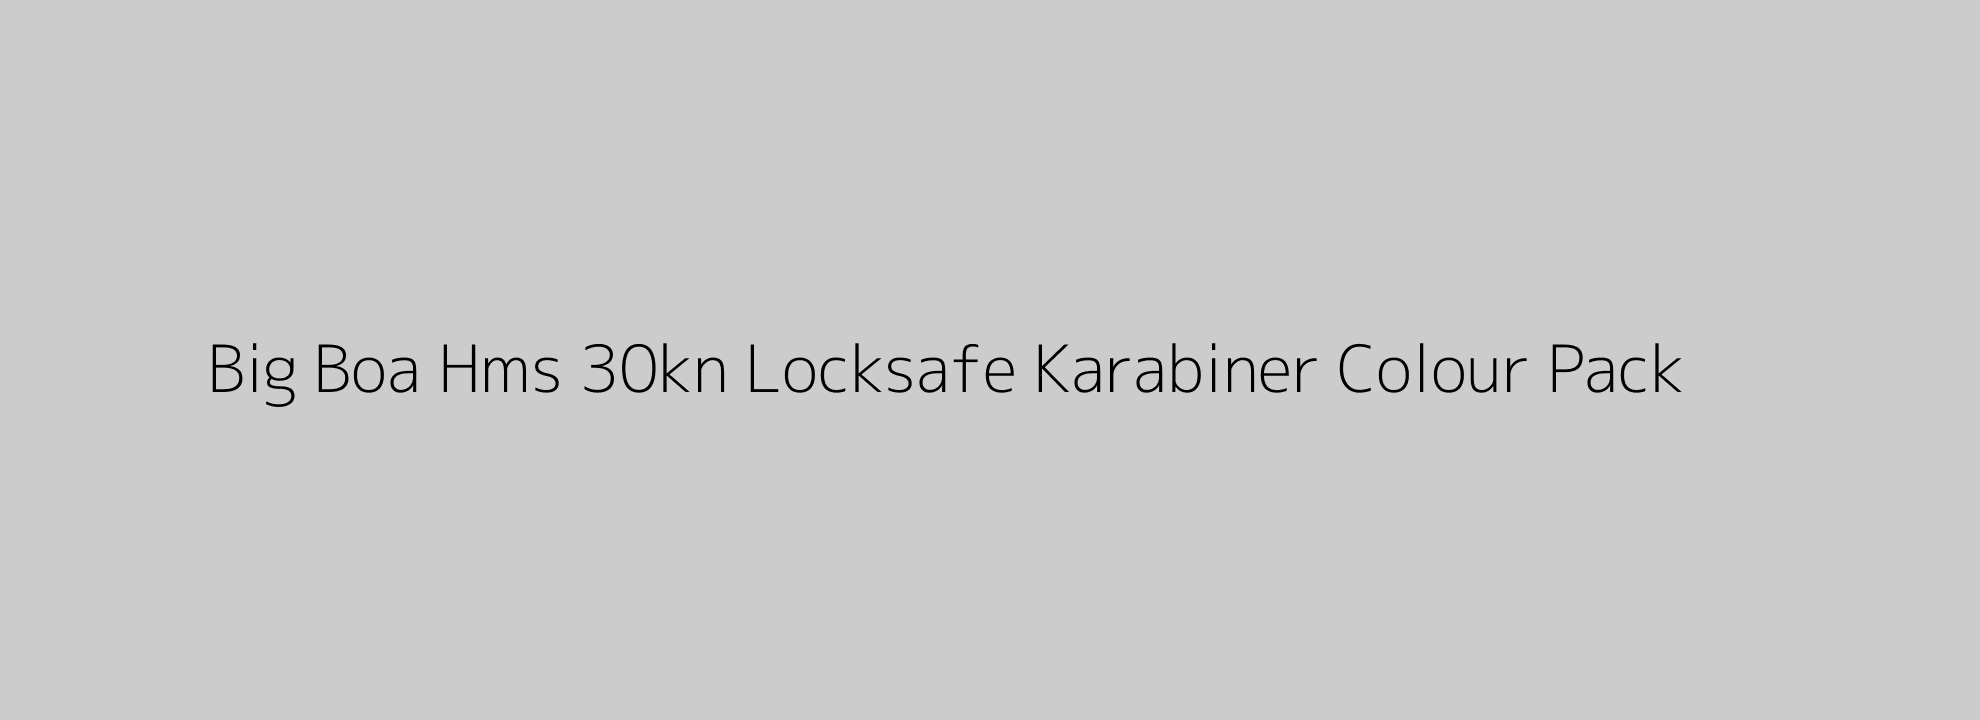 Big Boa Hms 30kn Locksafe Karabiner Colour Pack